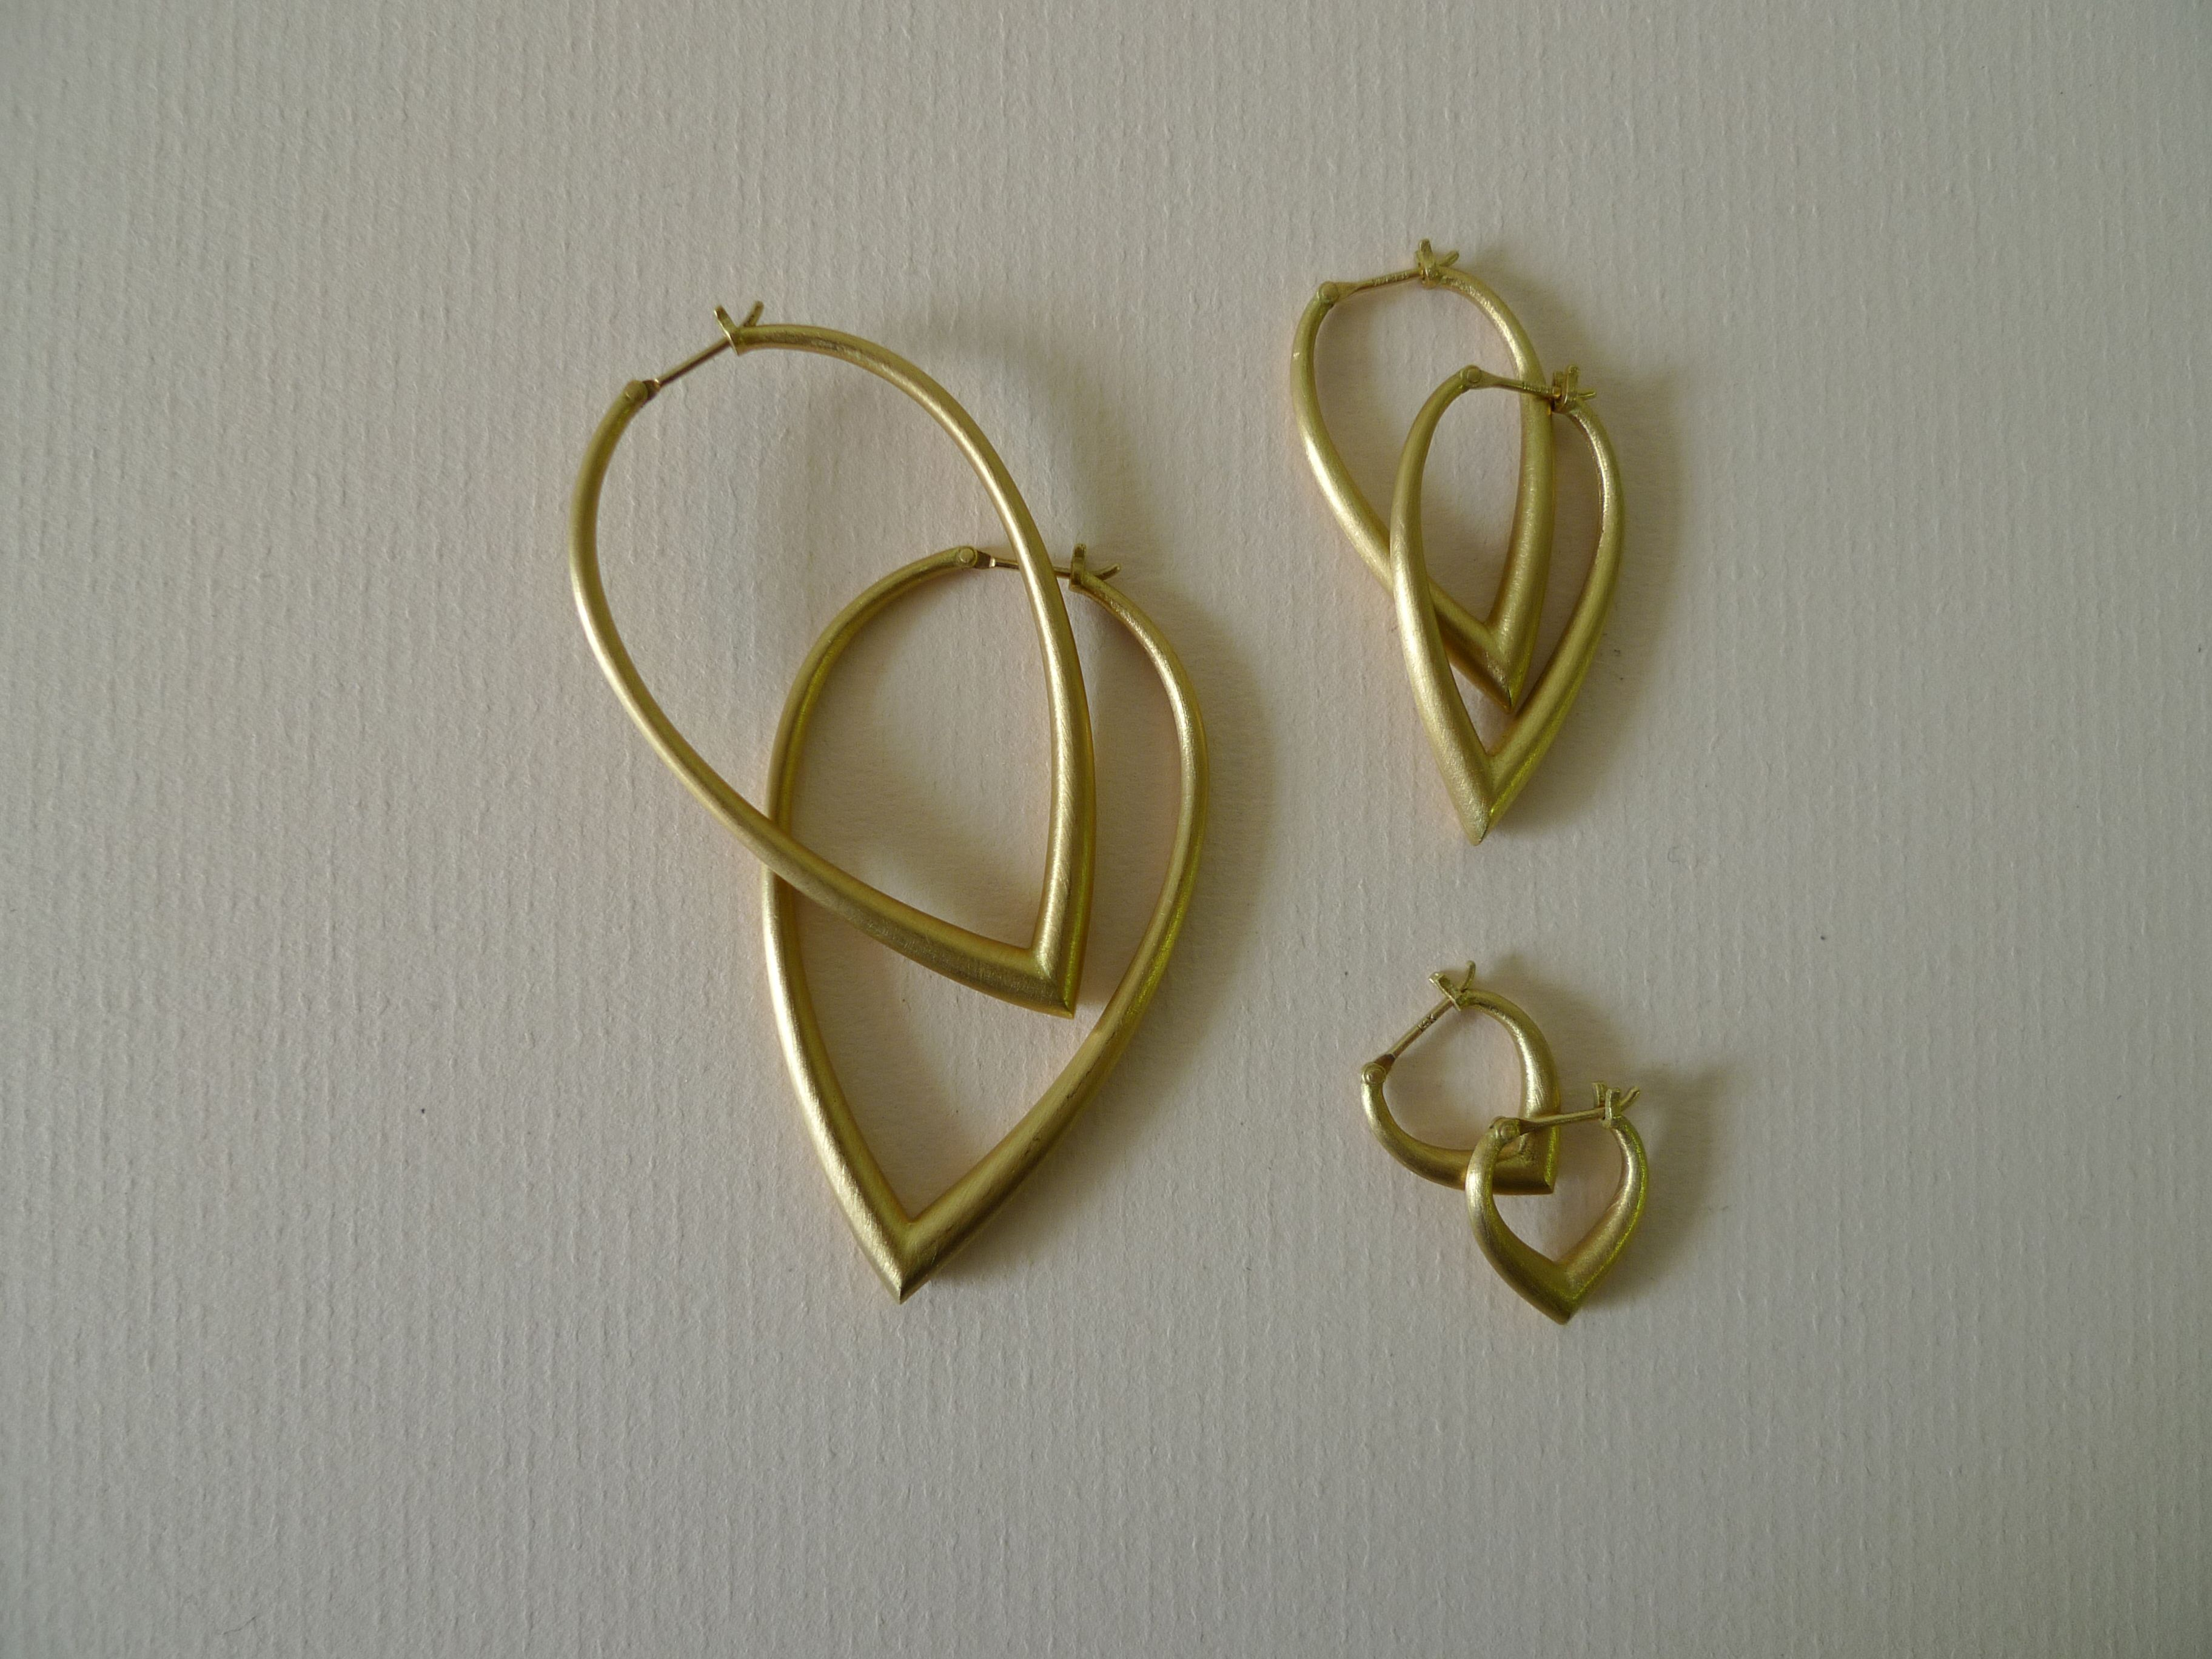 New Mallary Marks Jewelry Indonesian Hoop Earrings Lovely new Hoops